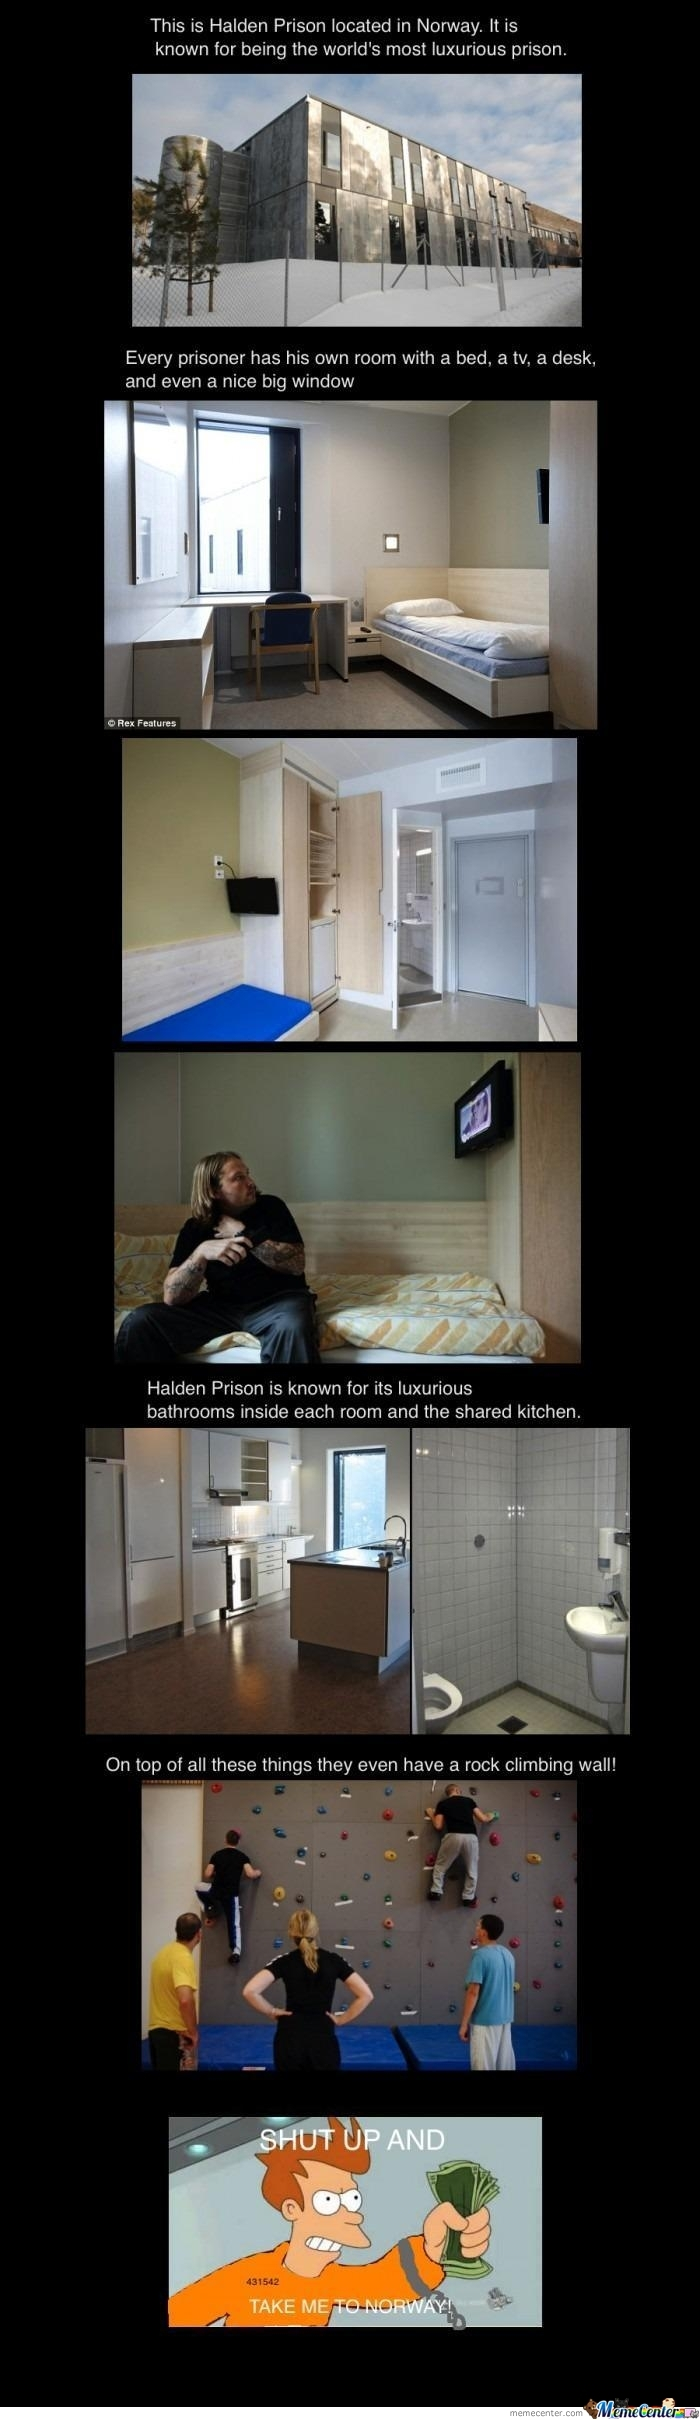 Halden Prison, Norway